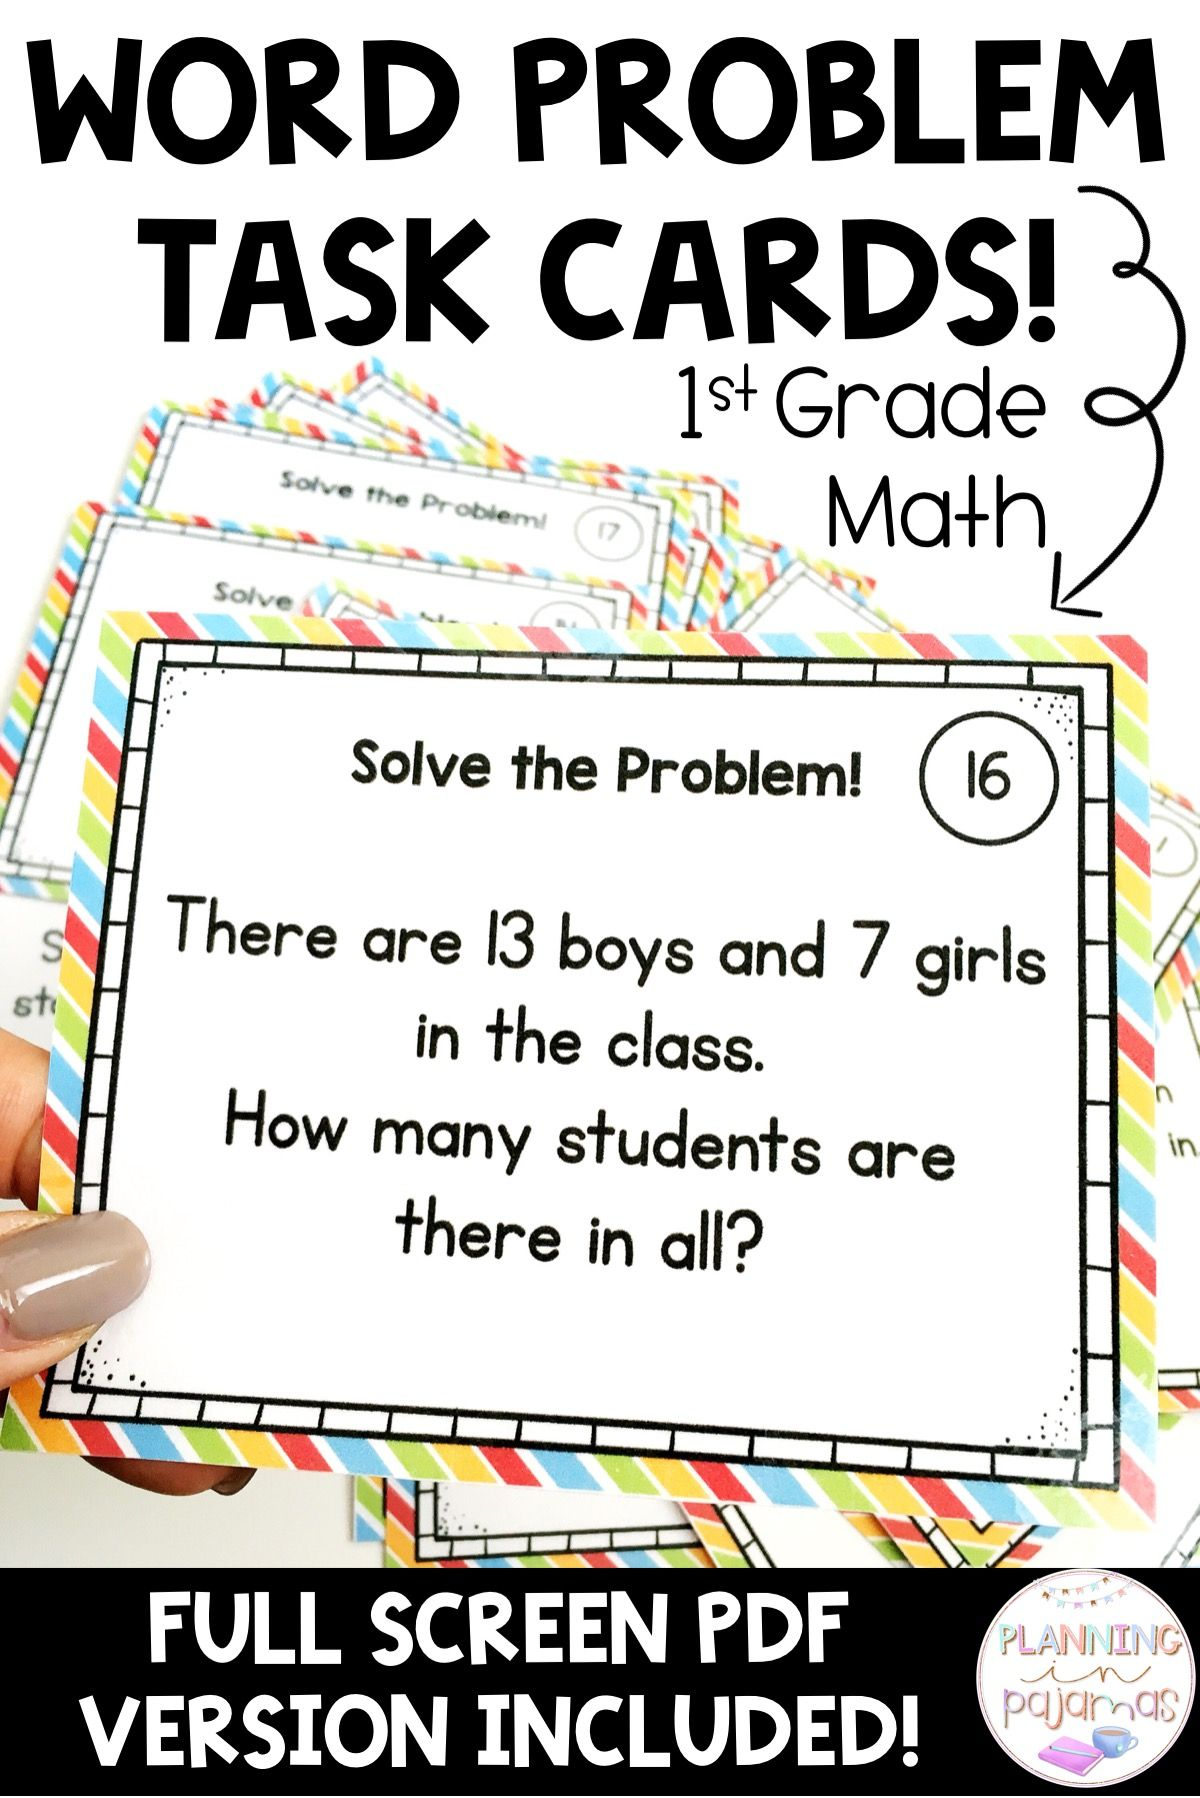 Word Problem Solving Task Cards Grade 1 Math Addition